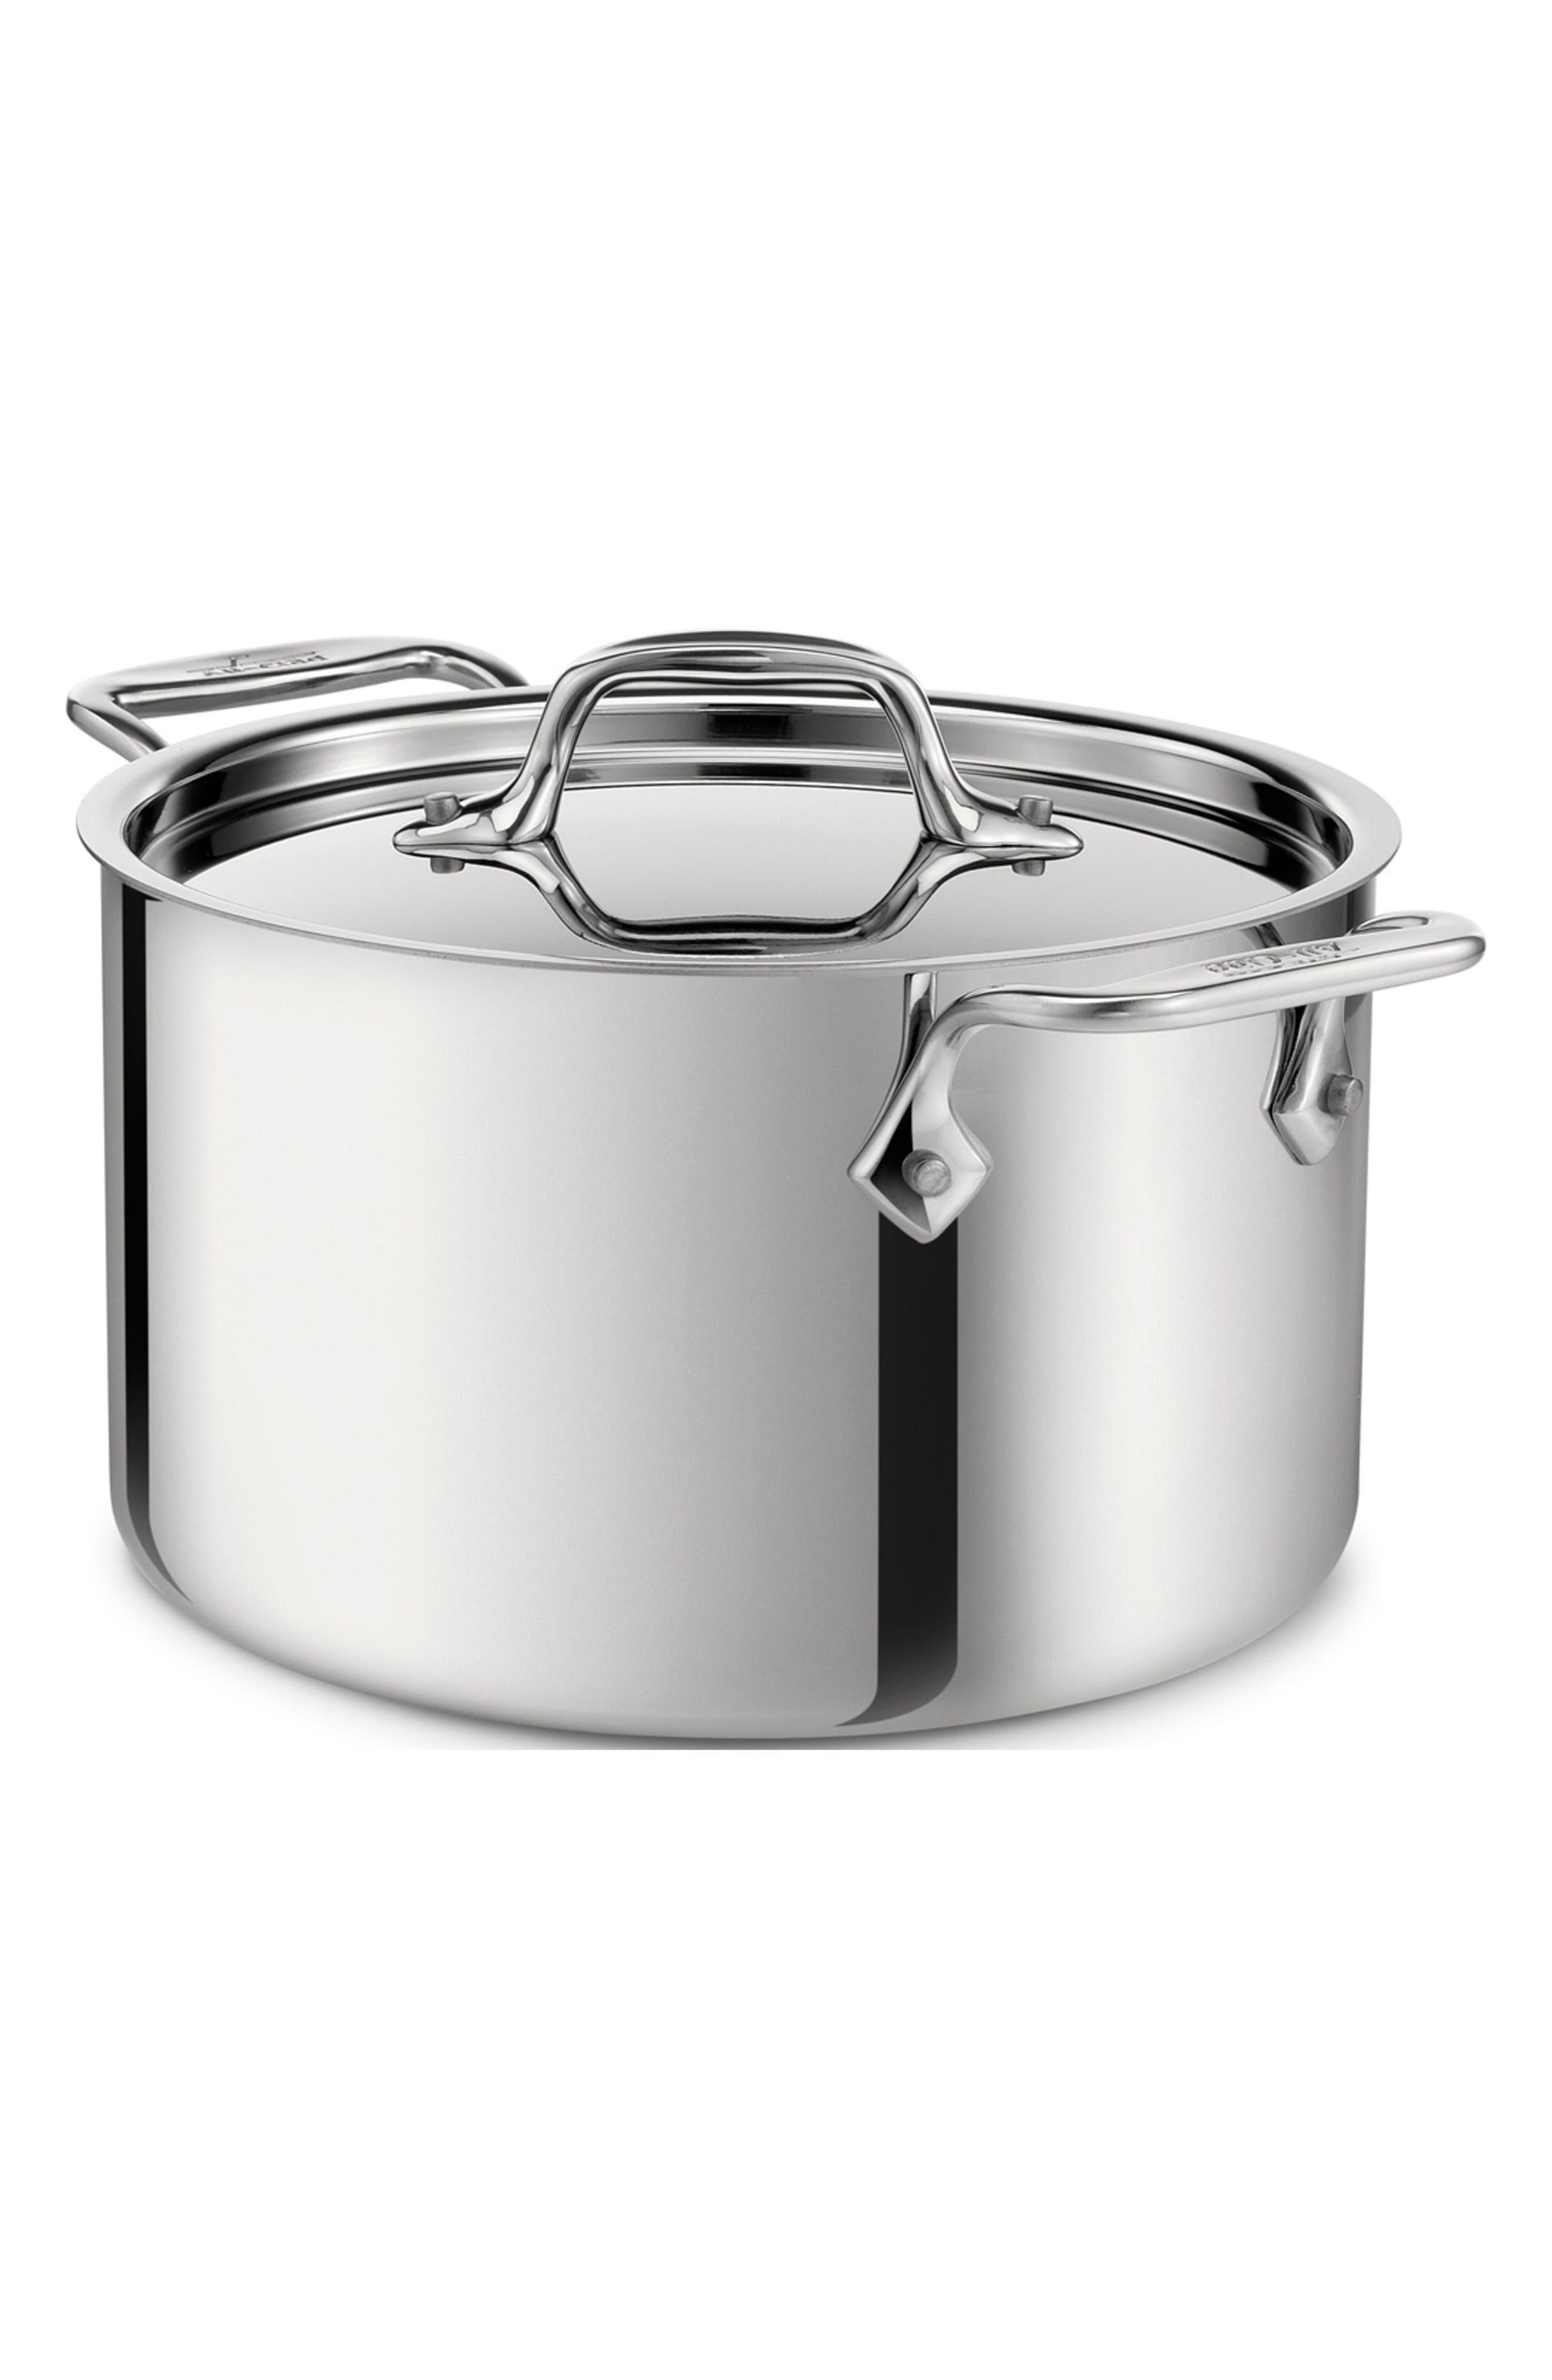 4-Quart Casserole with Lid,                             Main thumbnail 1, color,                             STAINLESS STEEL